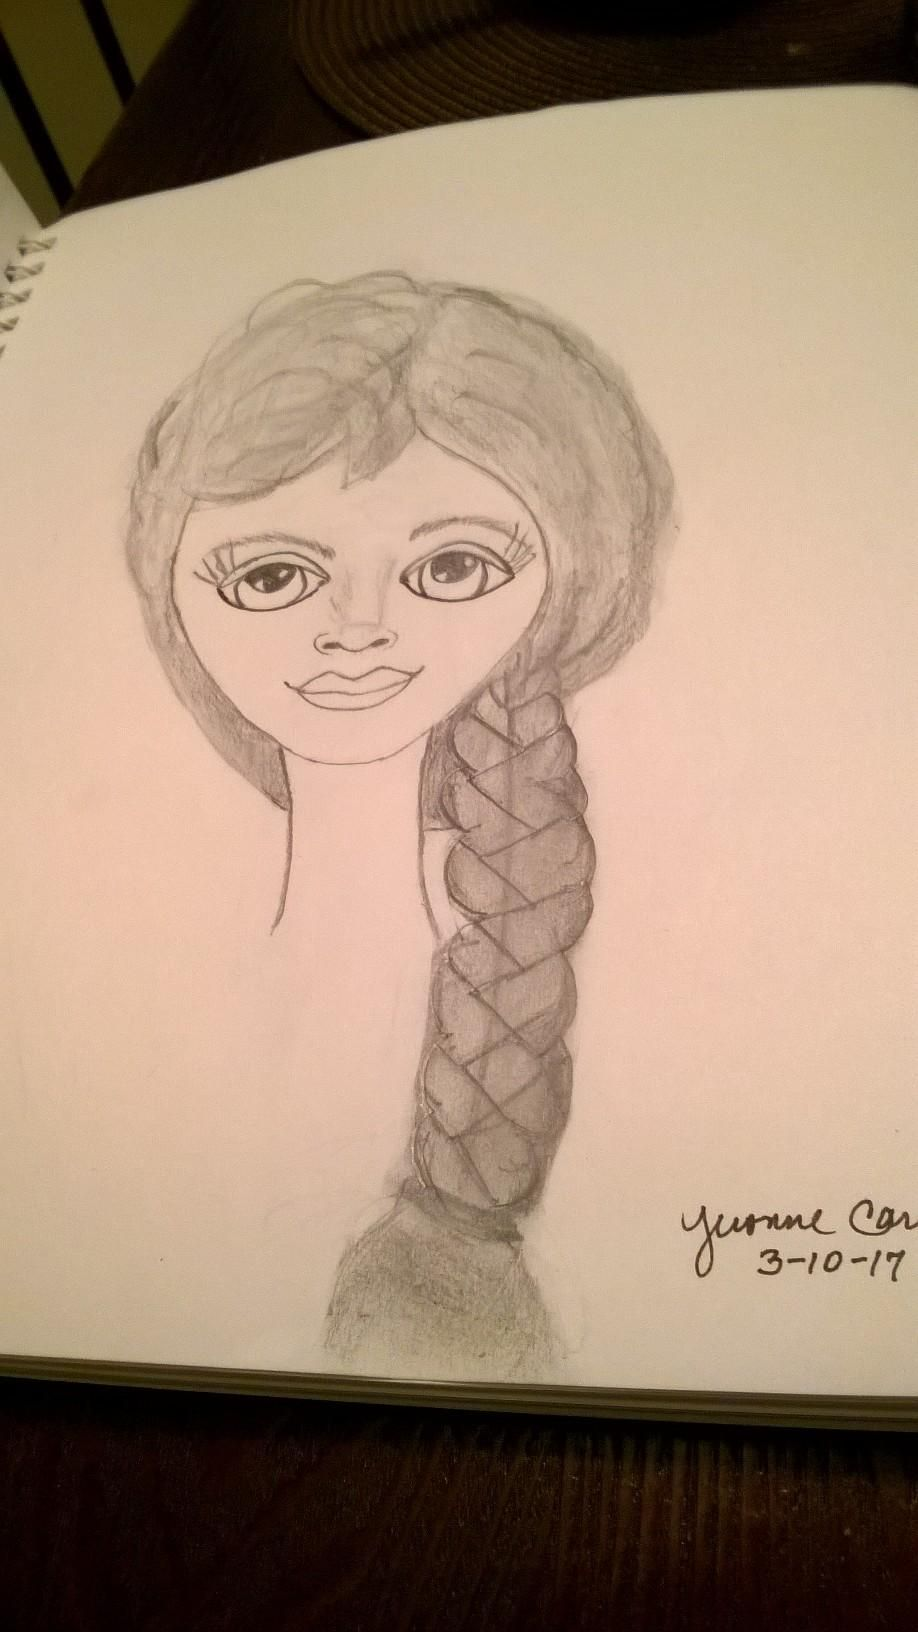 My First Female Character Attempt! - image 1 - student project